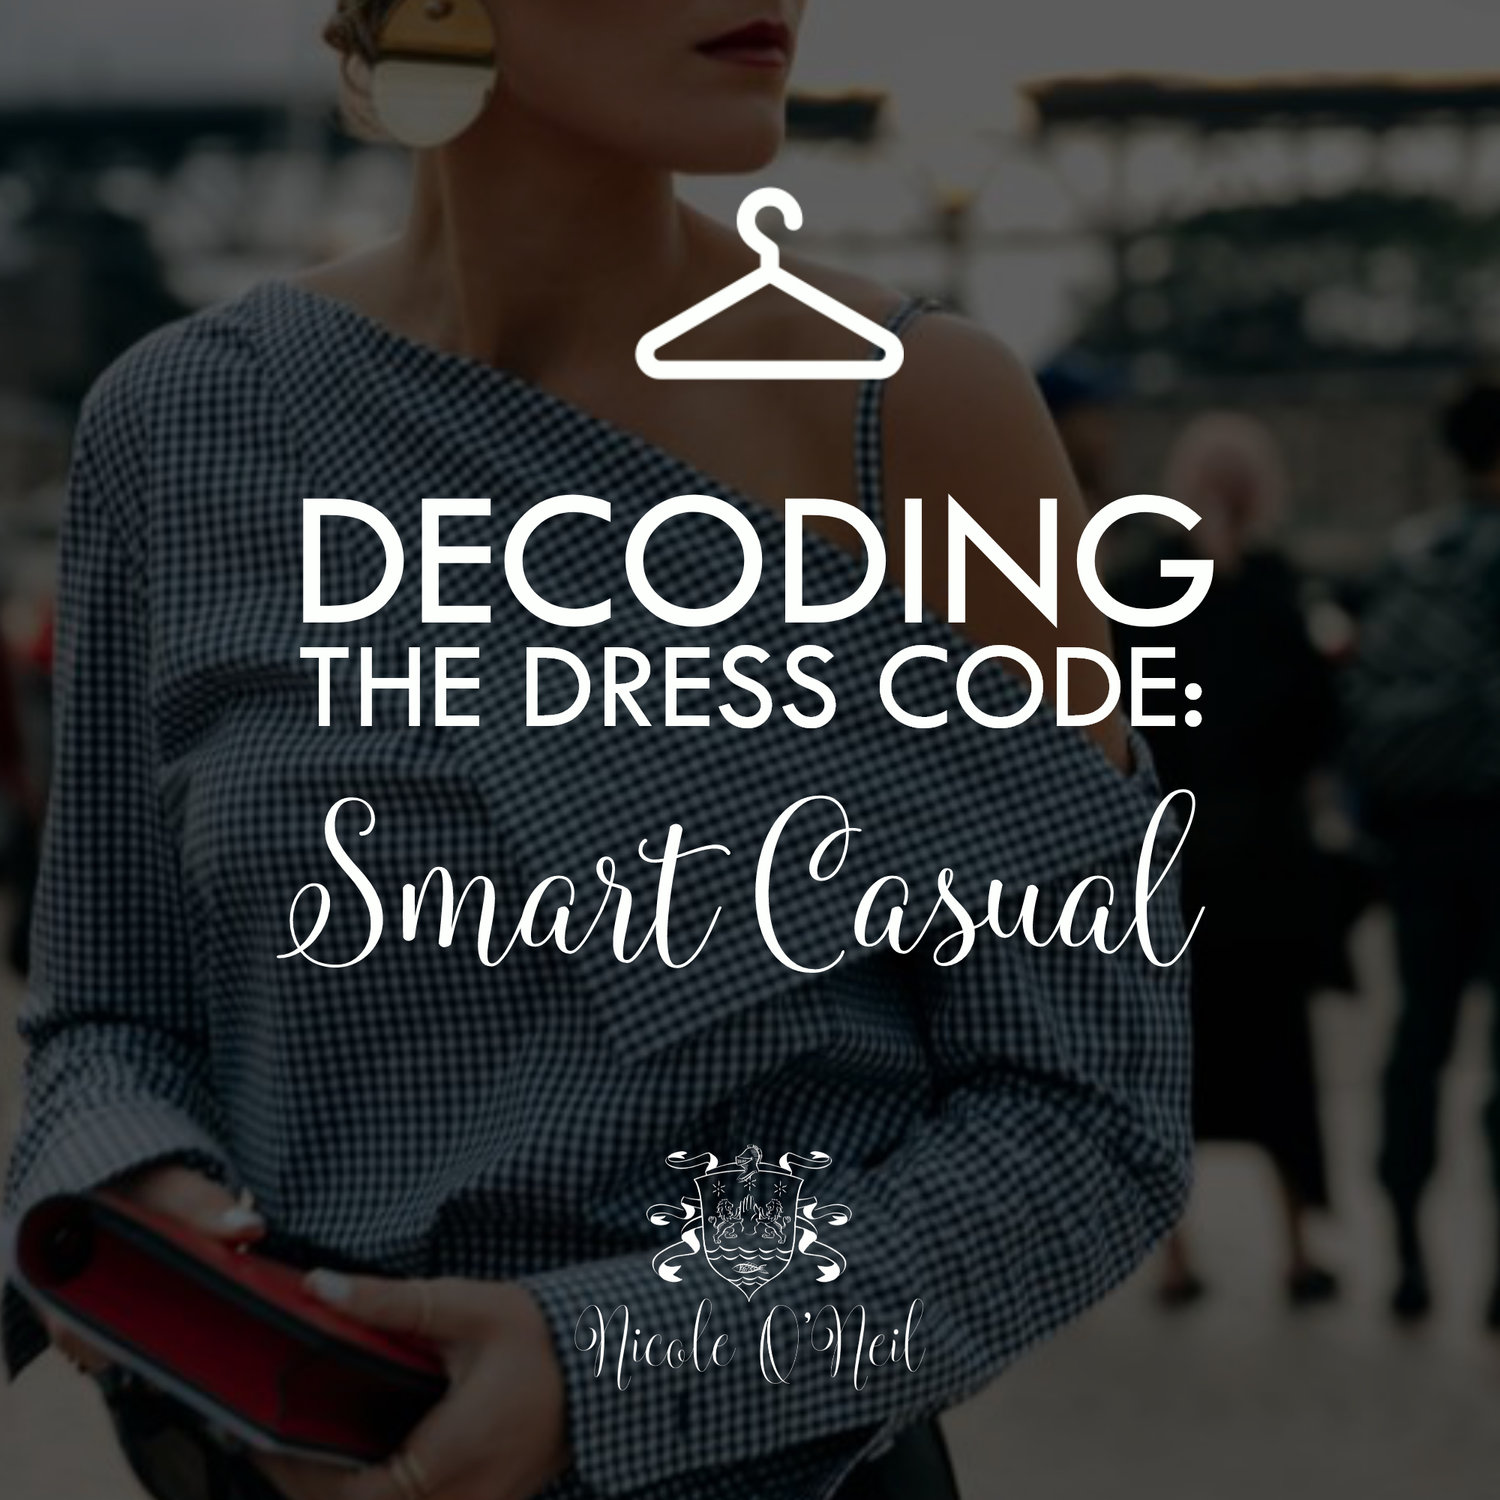 Decoding The Dress Code What Should I Wear To A Smart Casual Event